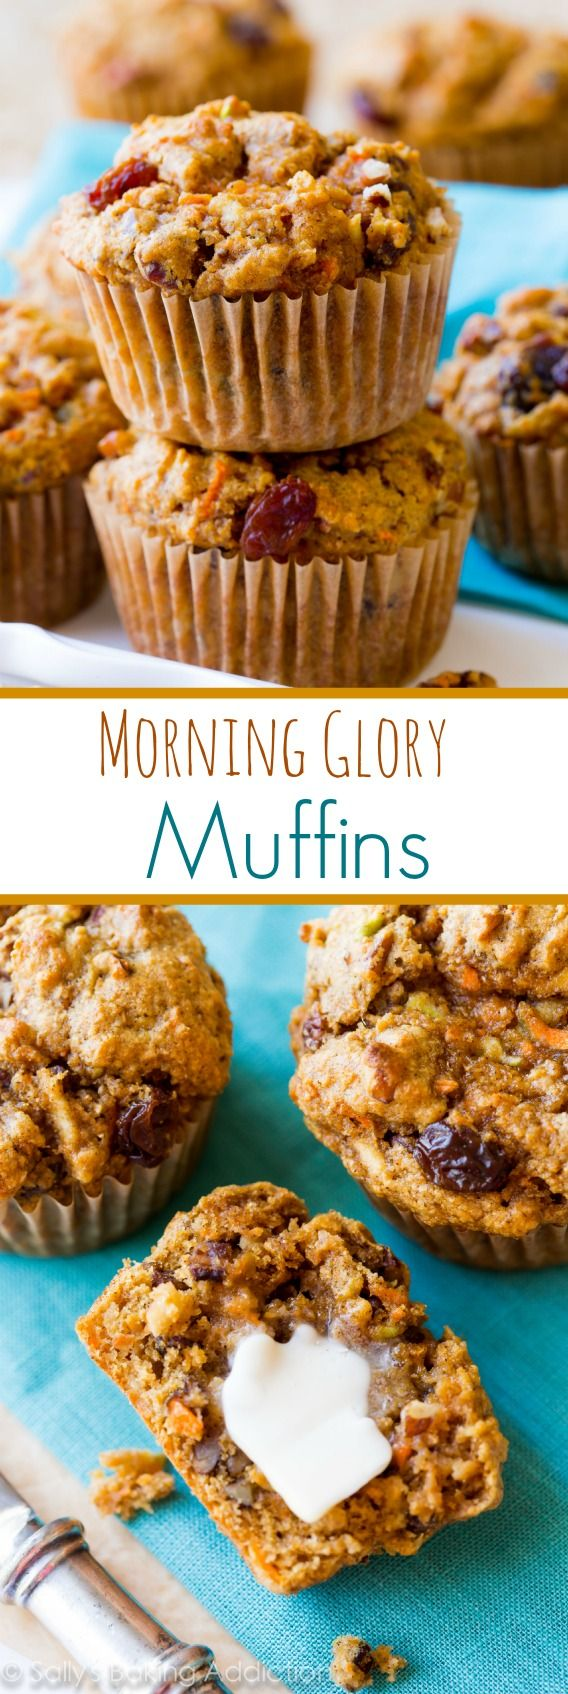 Simple, wholesome, and hearty Morning Glory Muffins packed with flavor and super-moist! #muffins #breakfast #brunch